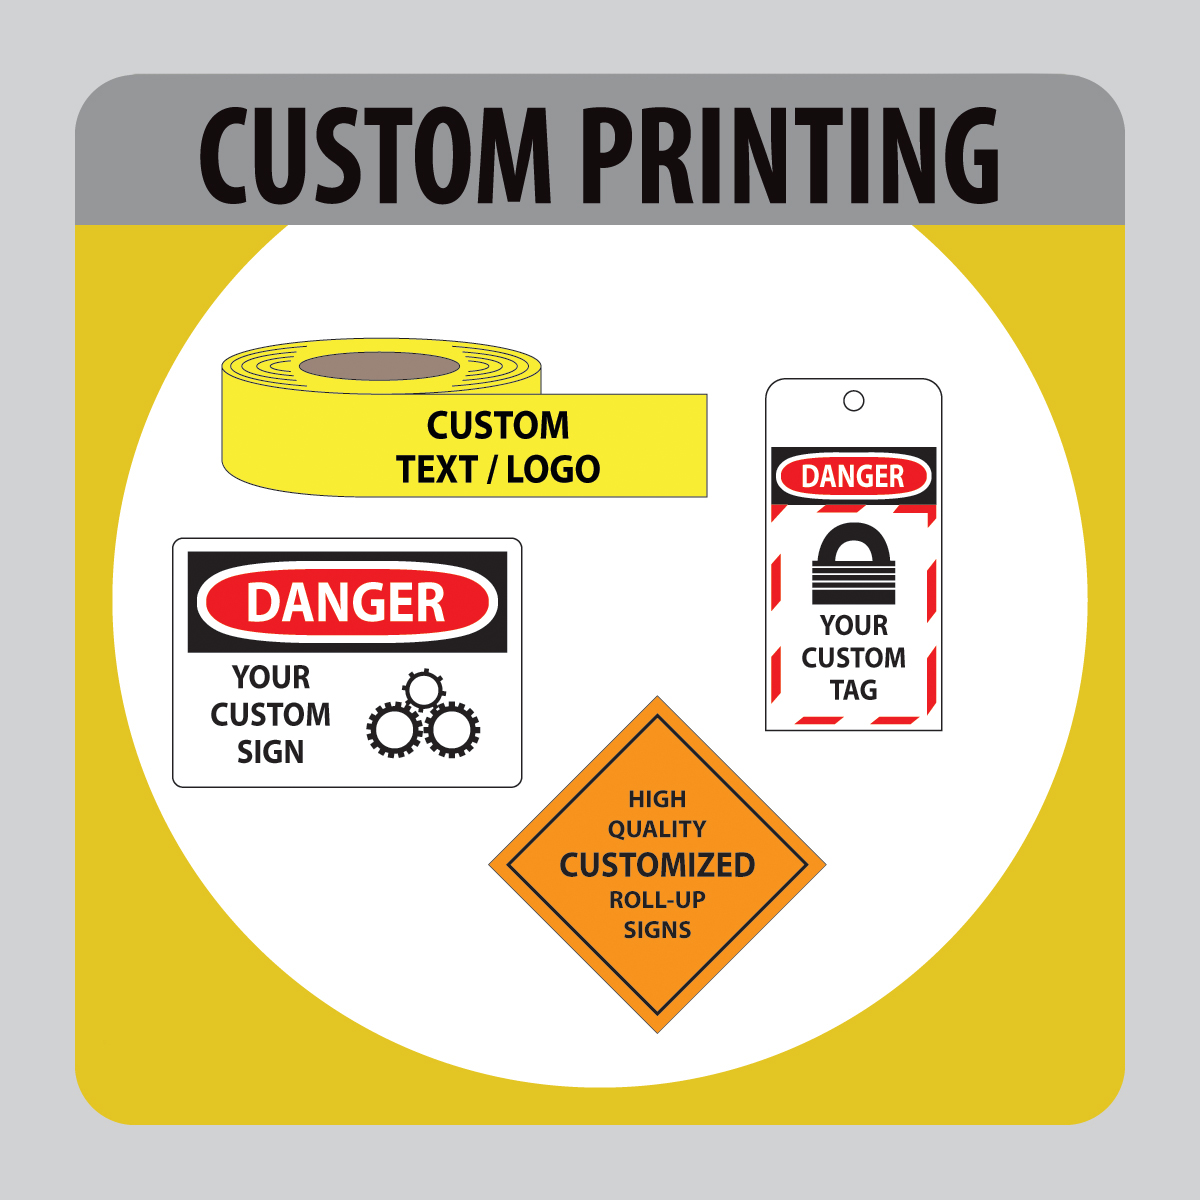 Custom Printing - Work Equipment